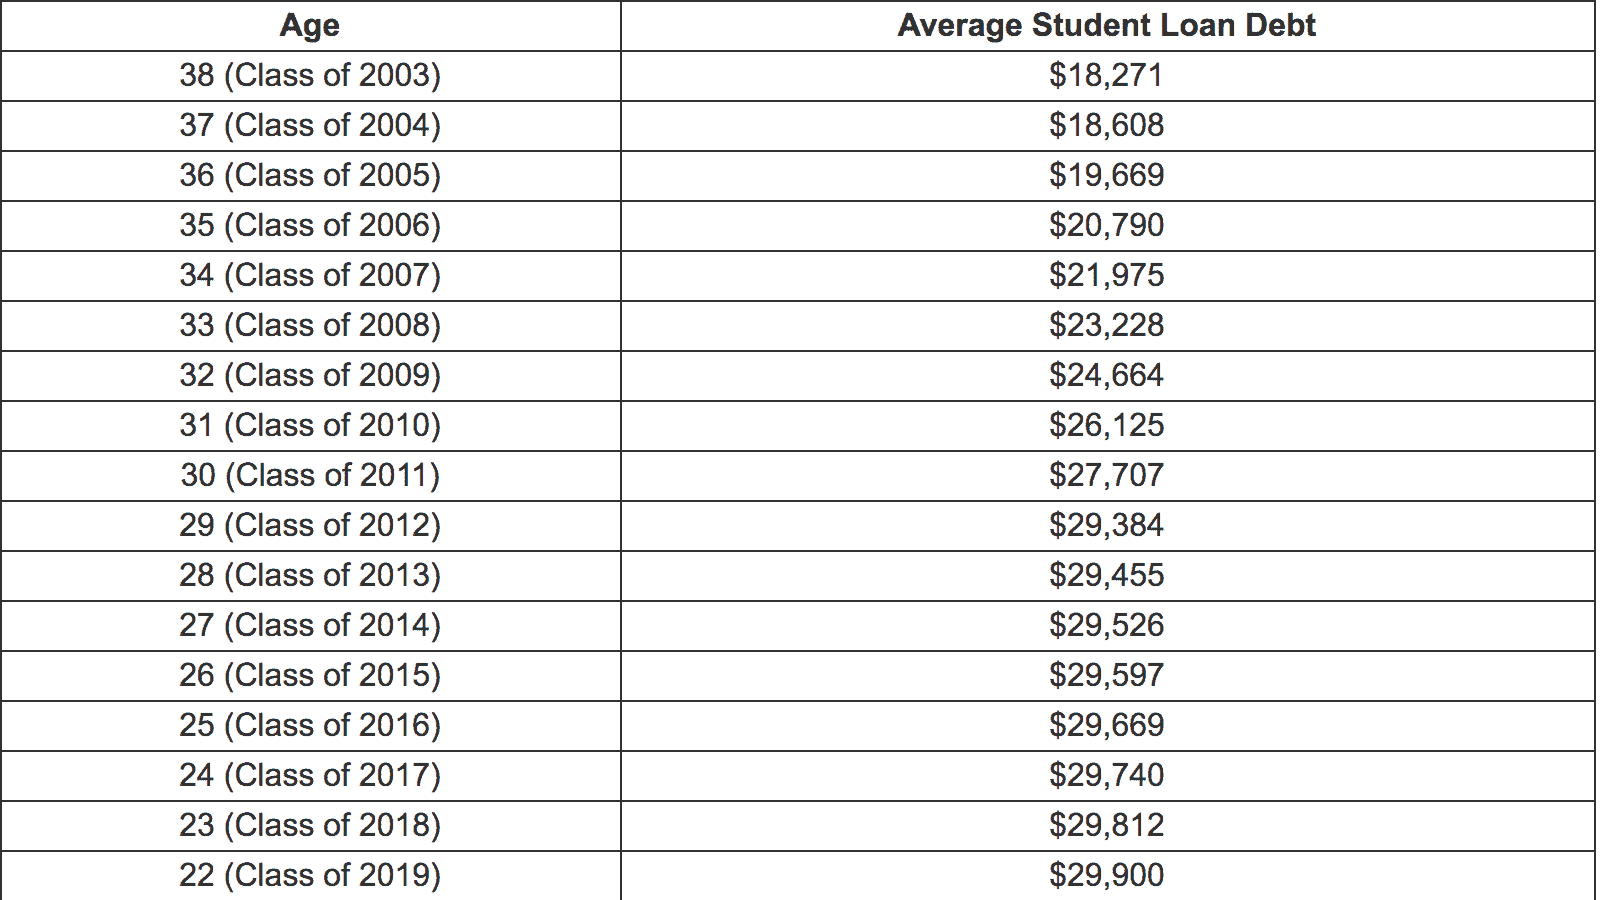 Average Student Loan Debt For Millennials